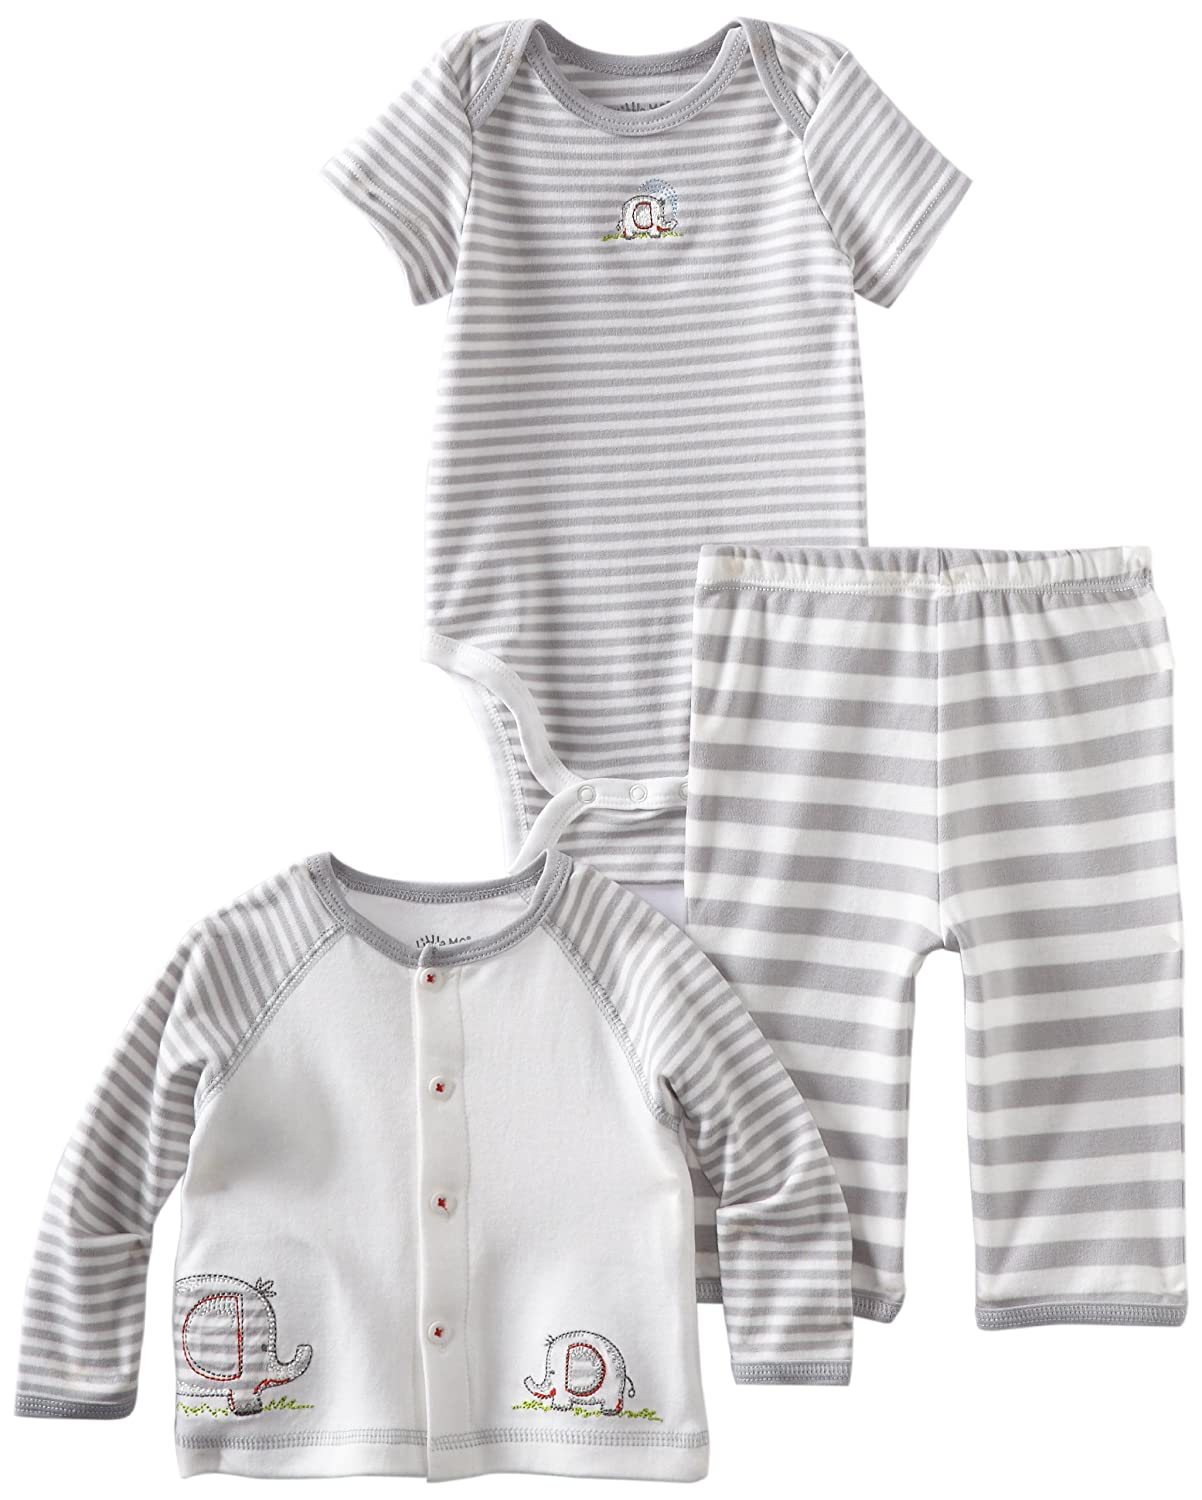 Amazon.com: Little Me - Layette Sets / Baby Boys: Clothingfkk boys